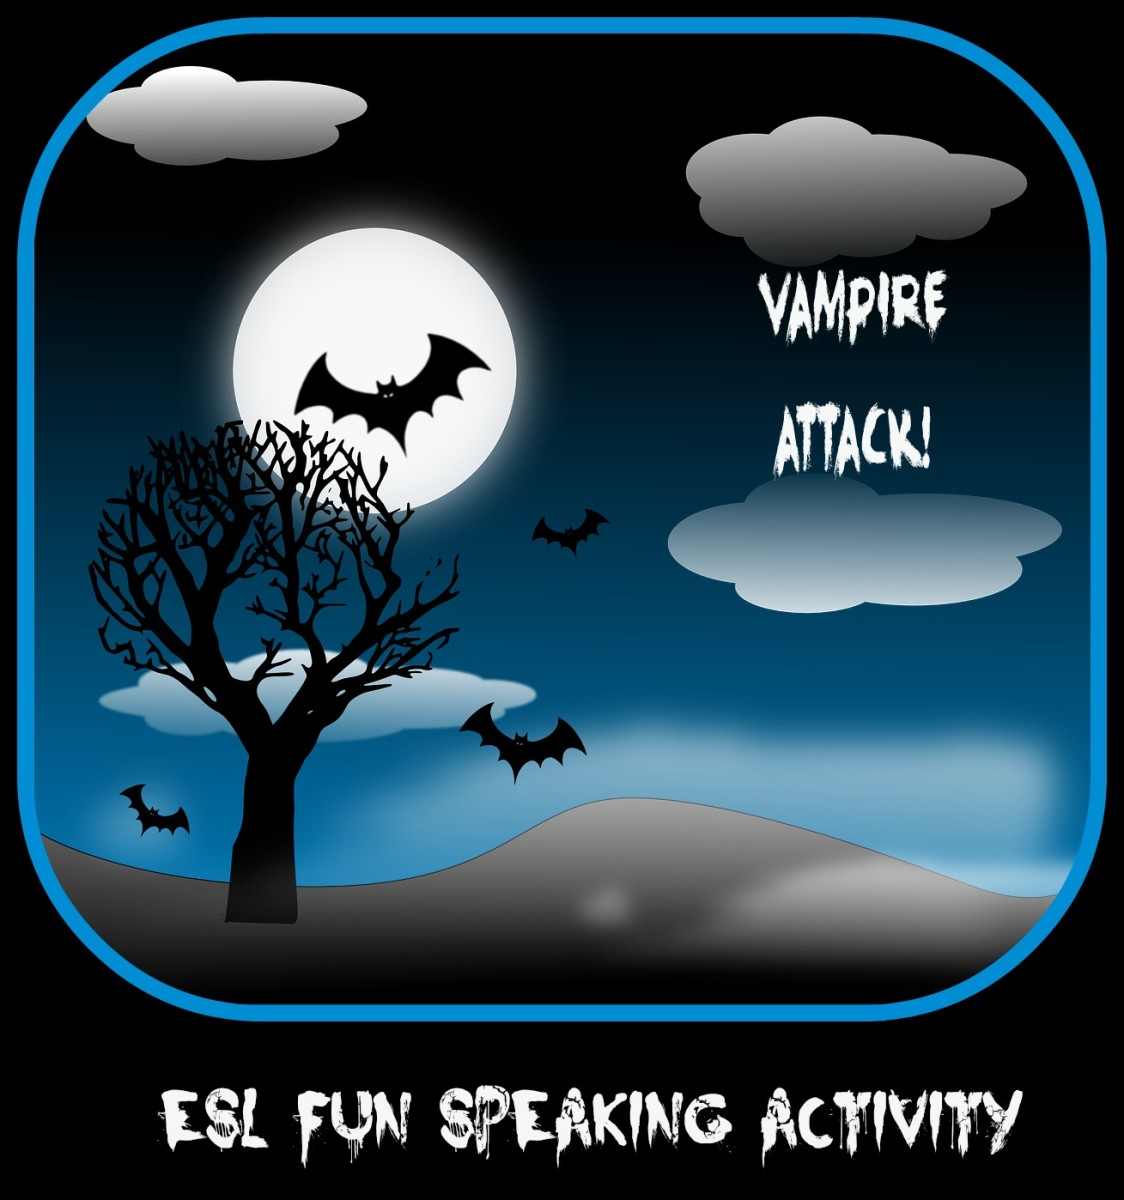 ESL Fun Speaking Activity - Vampire Attack